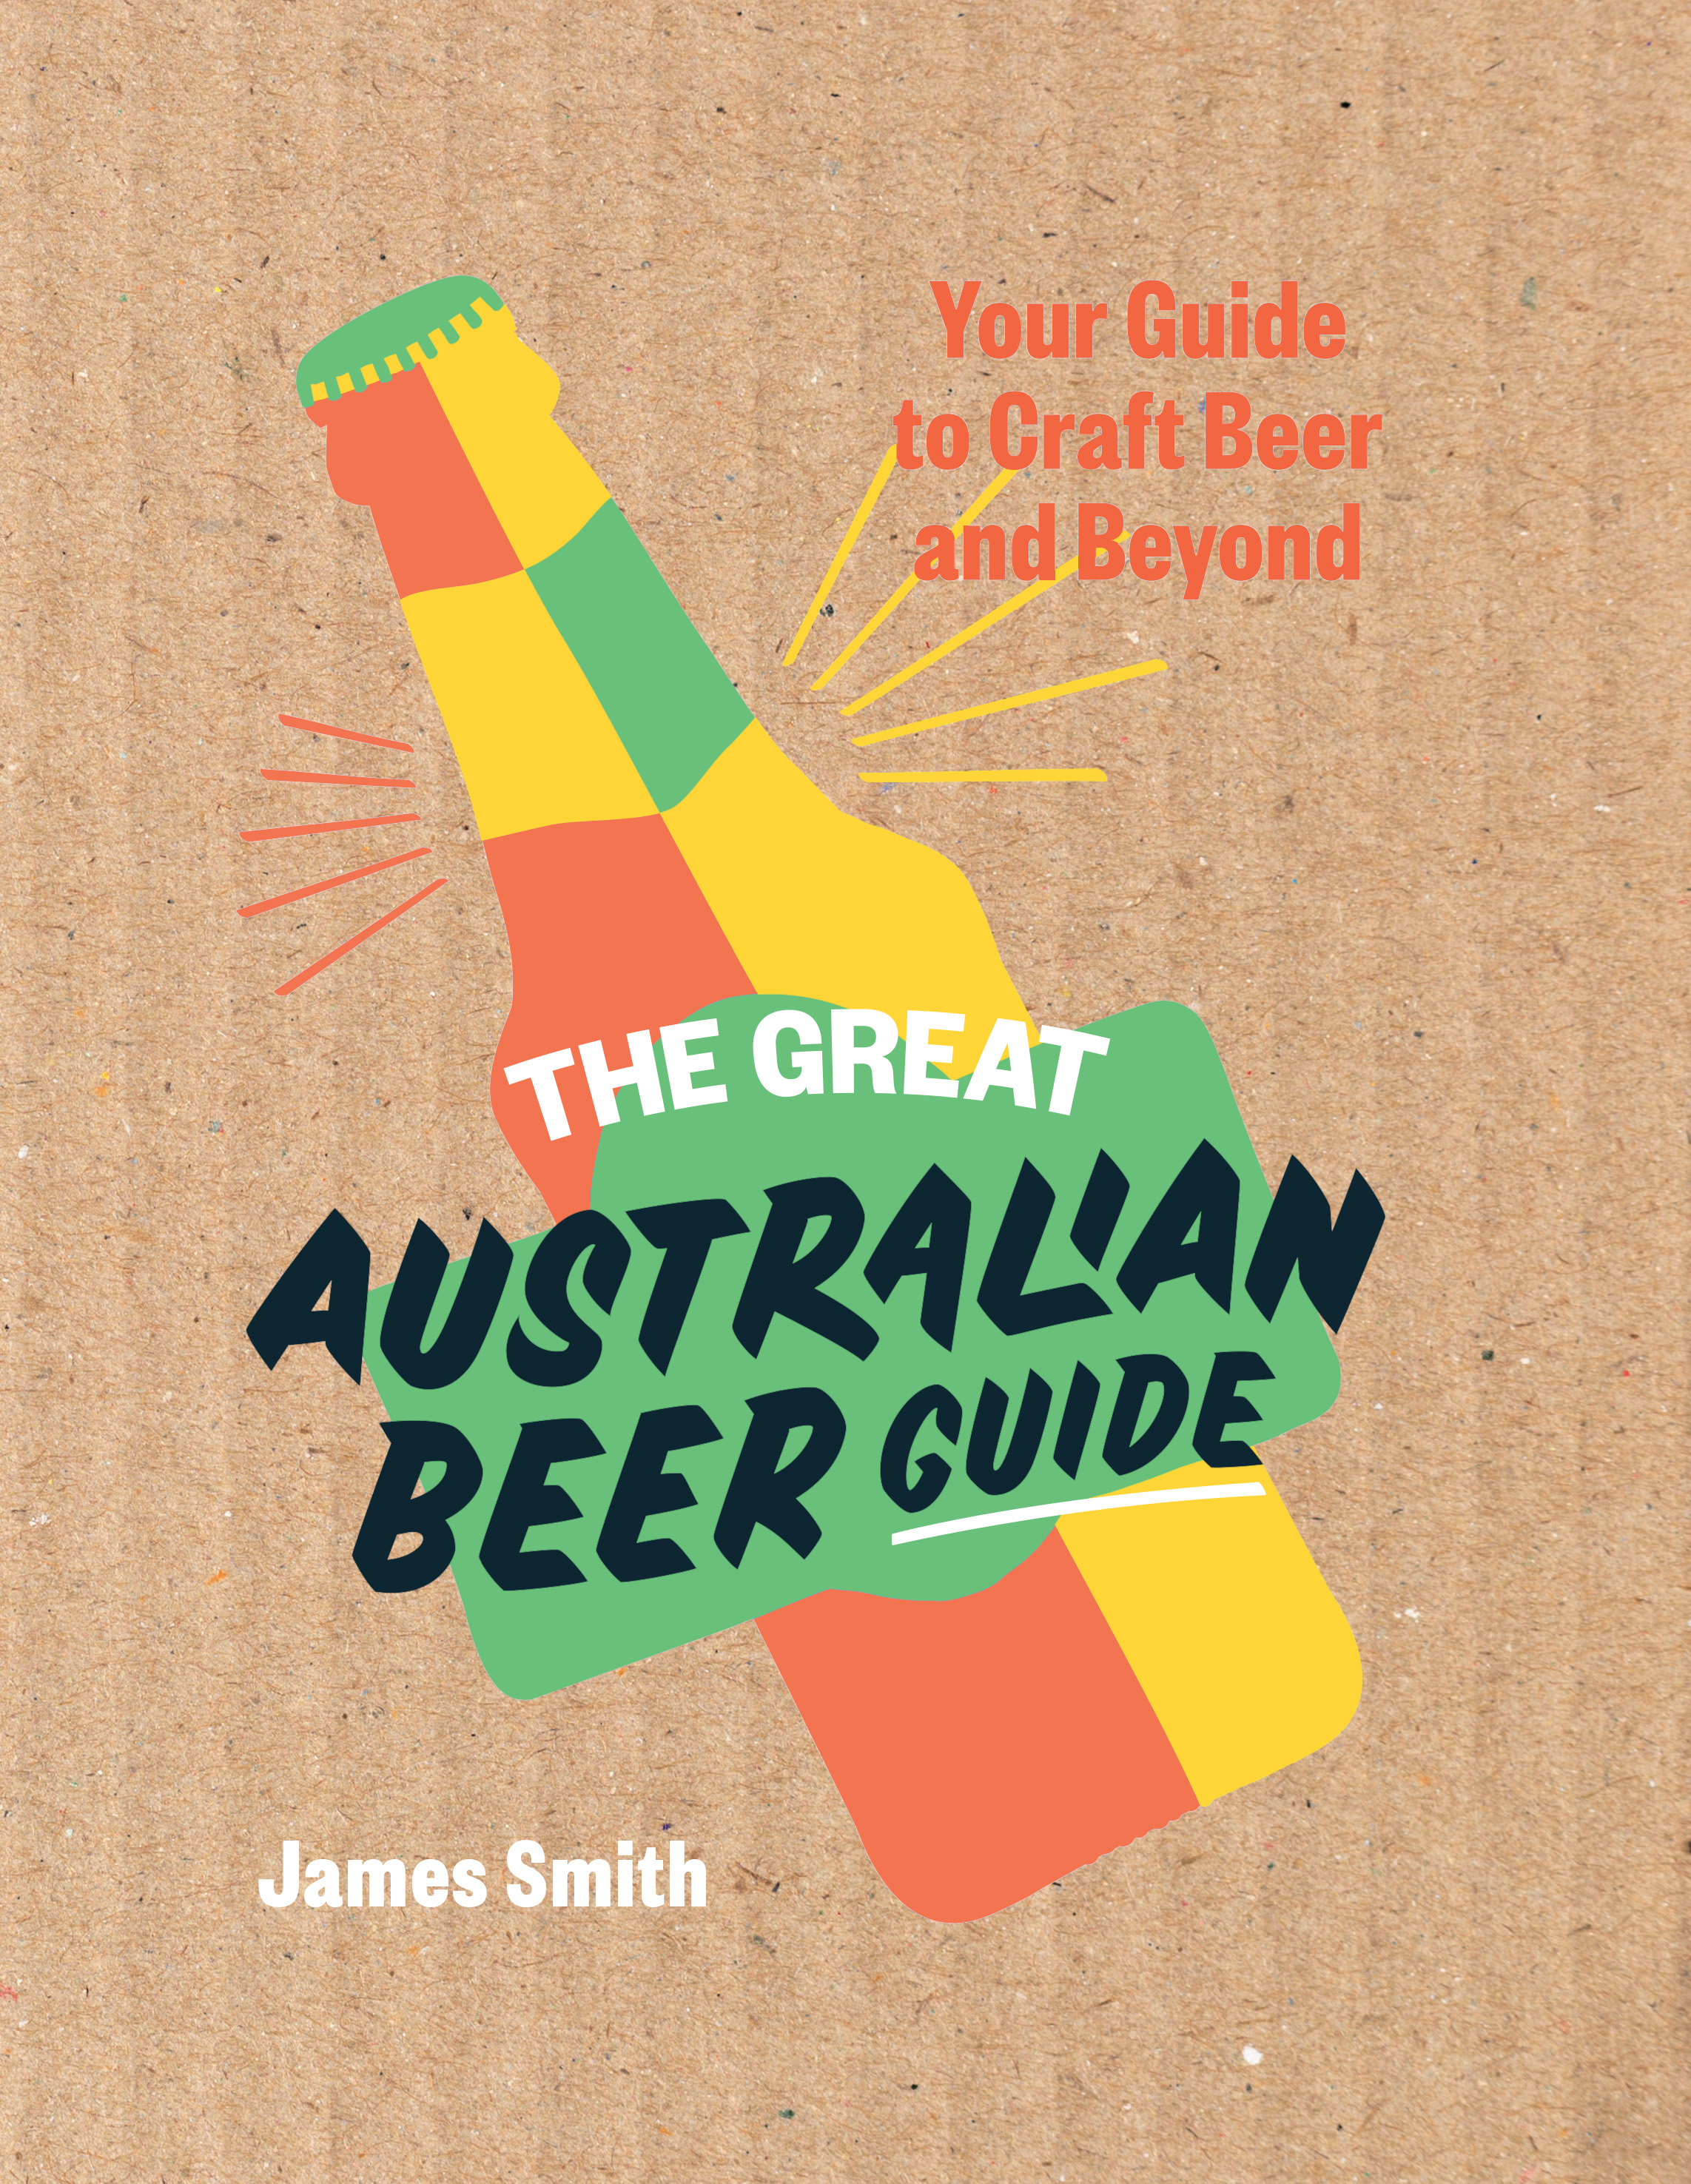 The Great Australian Beer Guide by James Smith, ISBN: 9781743791394